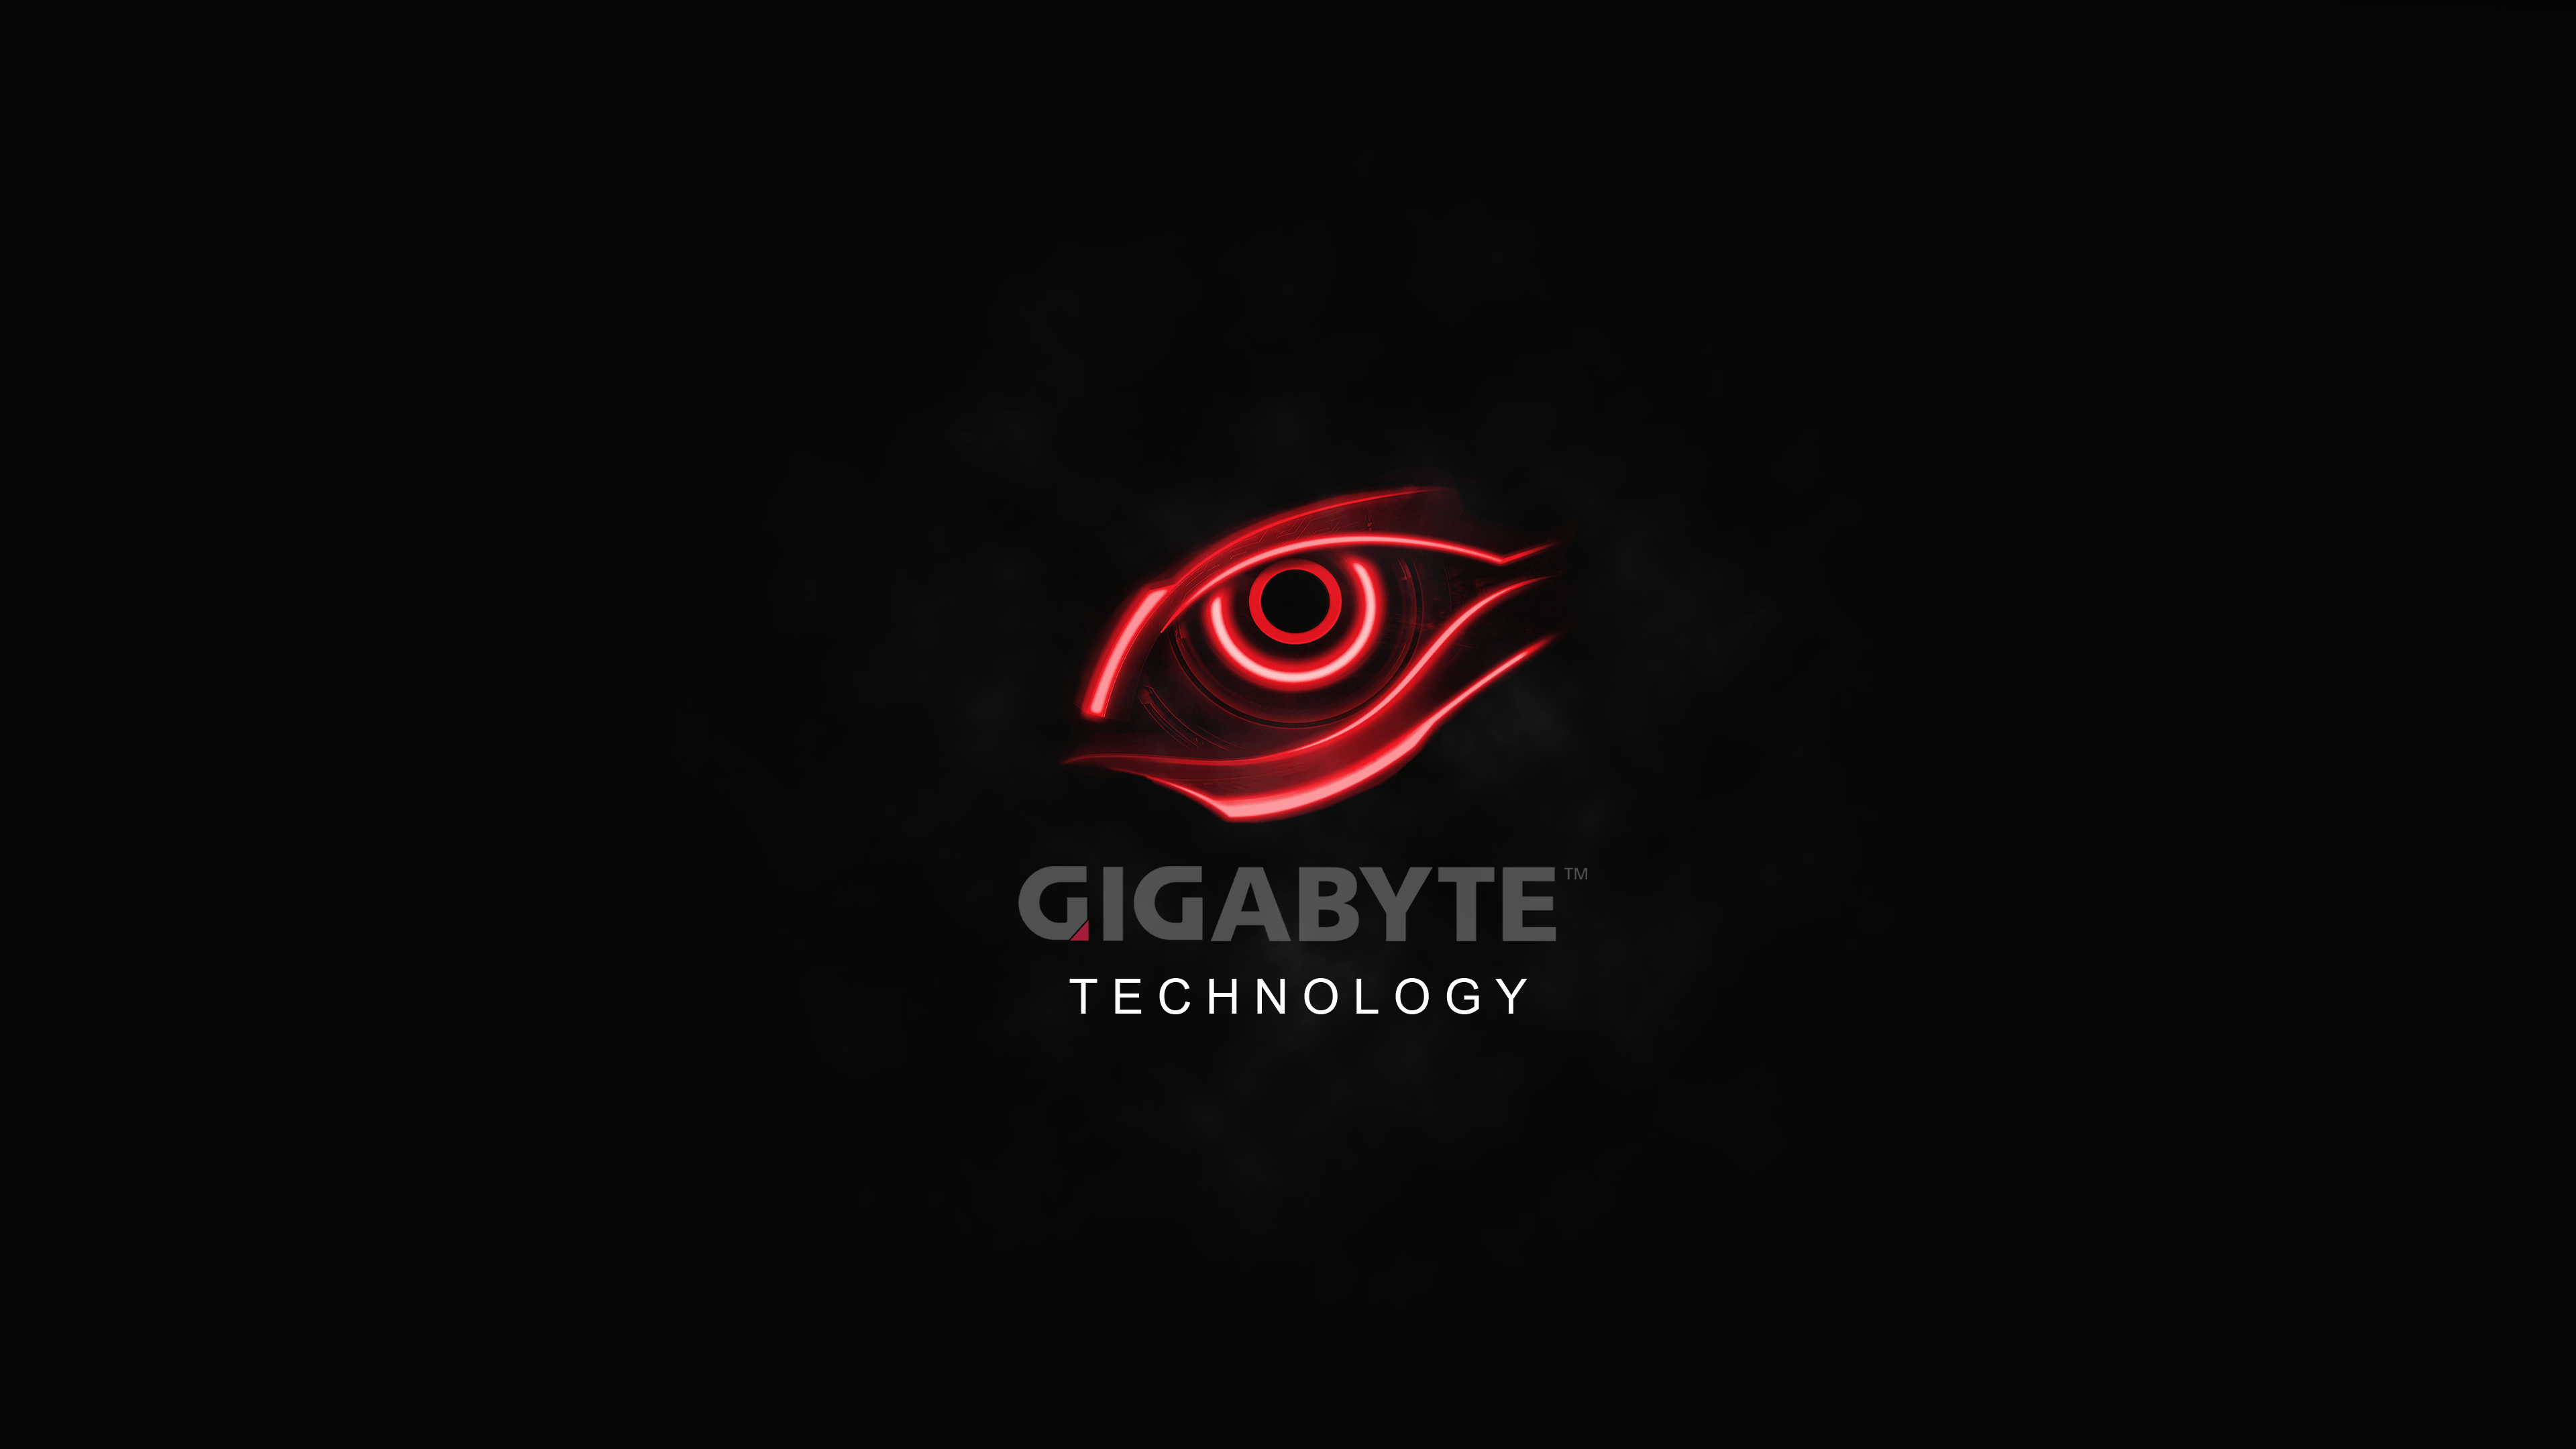 Amd Gigabyte 4k Wallpapers Top Free Amd Gigabyte 4k